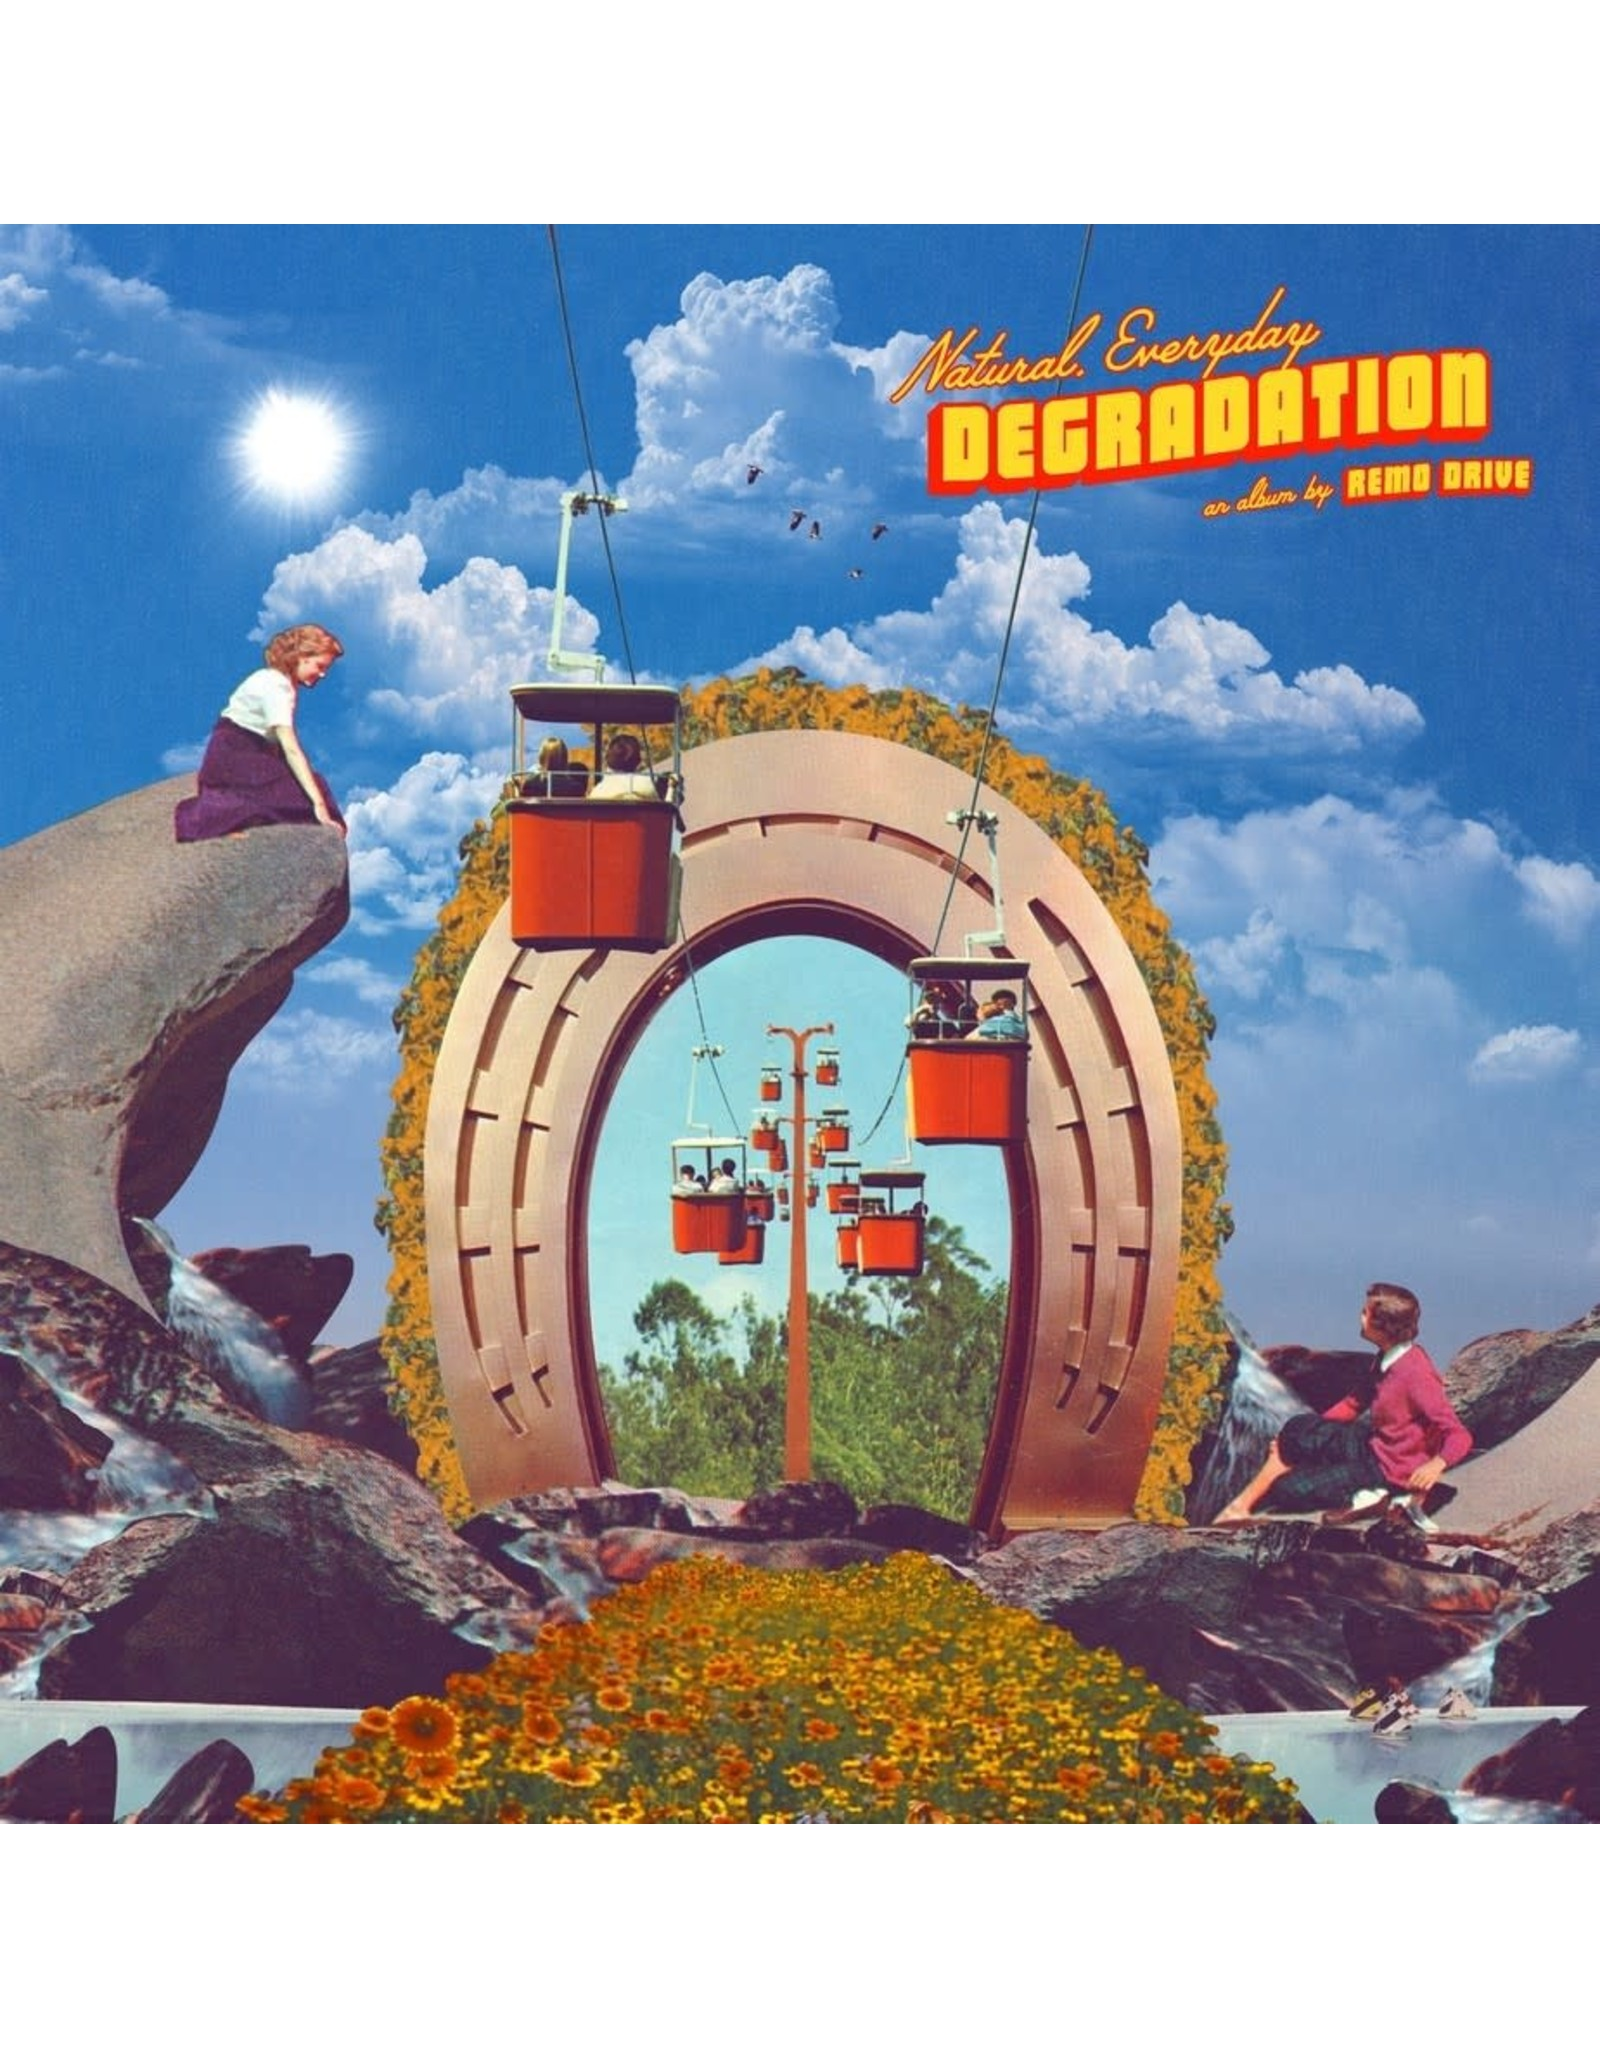 Remo Drive - Natural Everyday Degradation CD